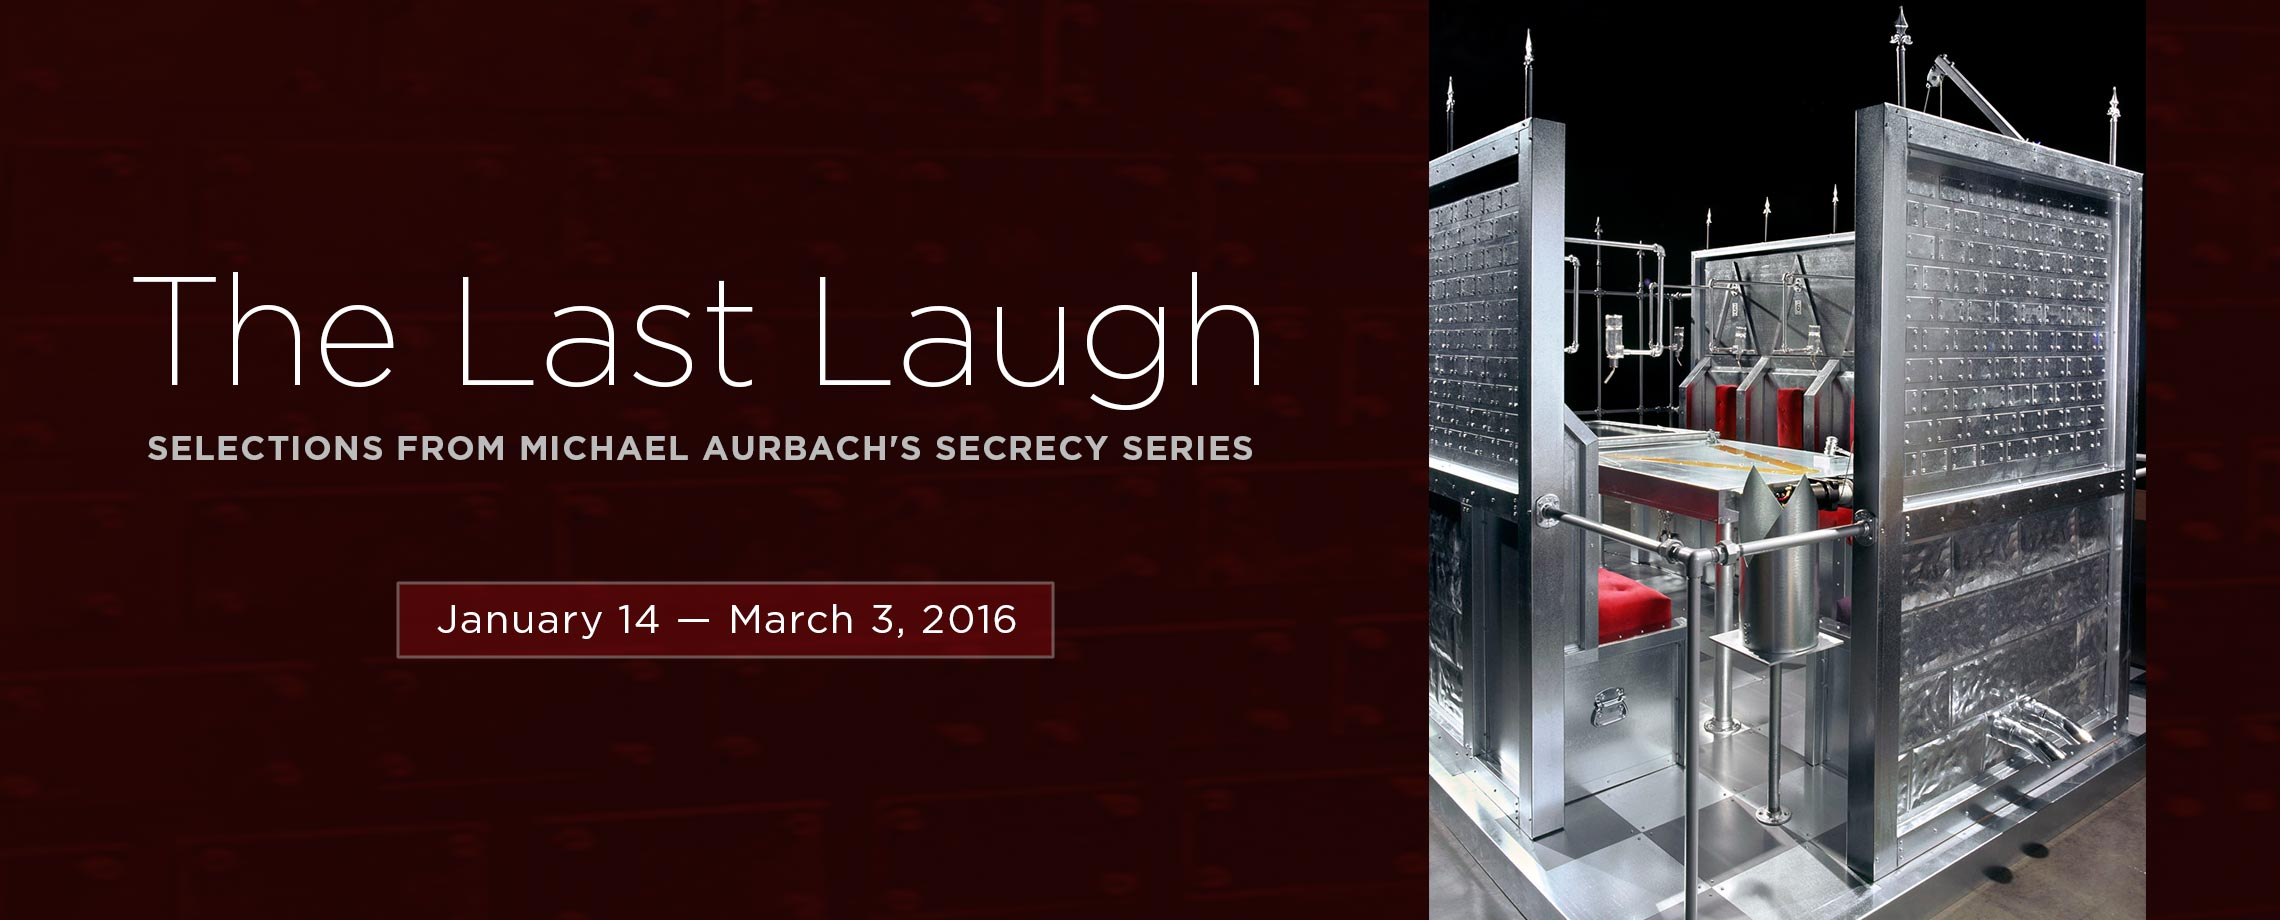 The Last Laugh: Selections from Michael Aurbach's Secrecy Series